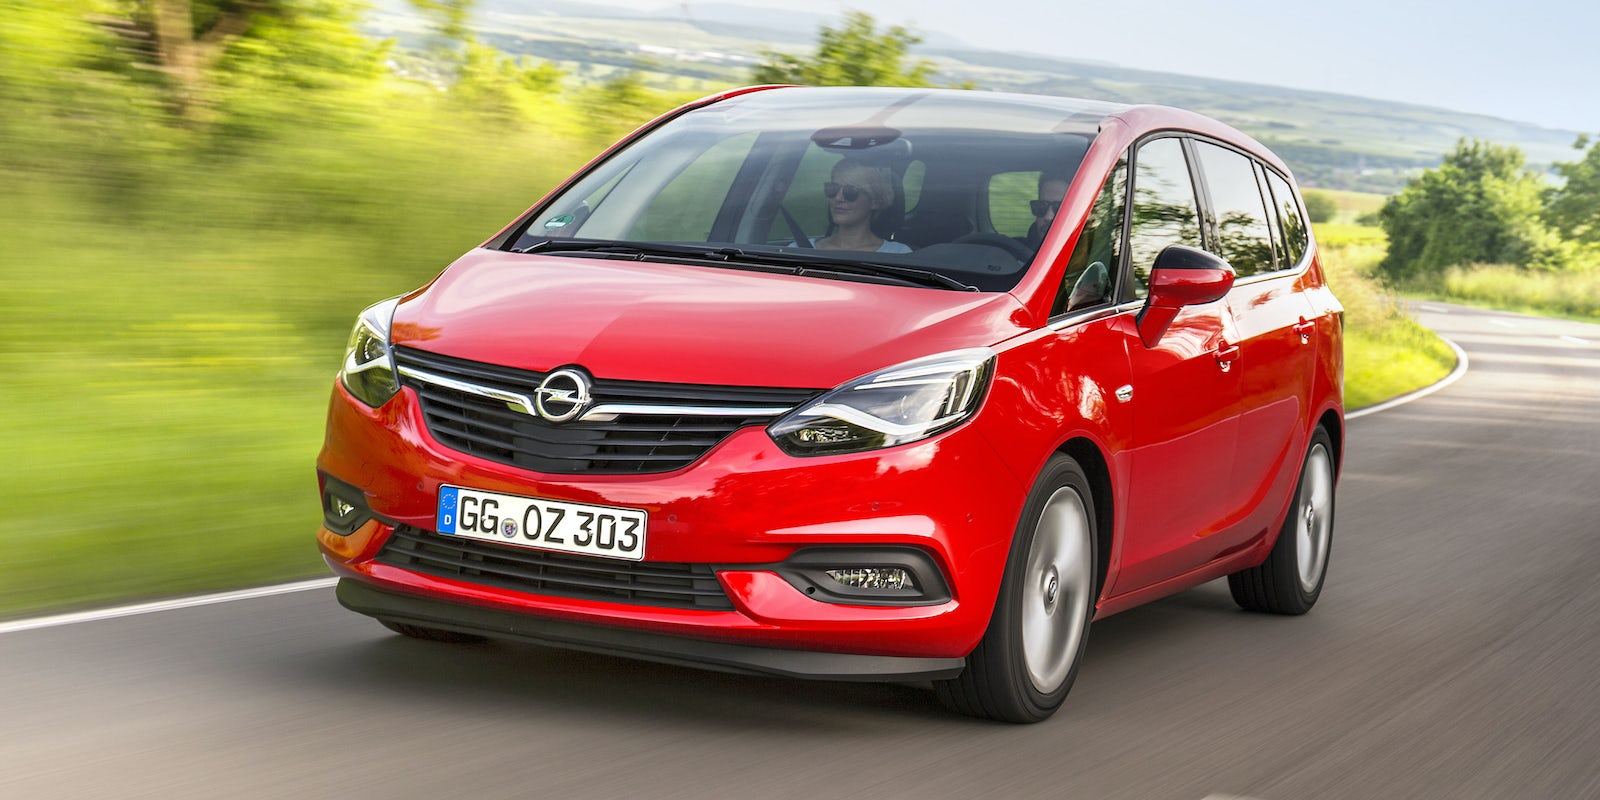 opel zafira im test mit bildern wertung carwow. Black Bedroom Furniture Sets. Home Design Ideas